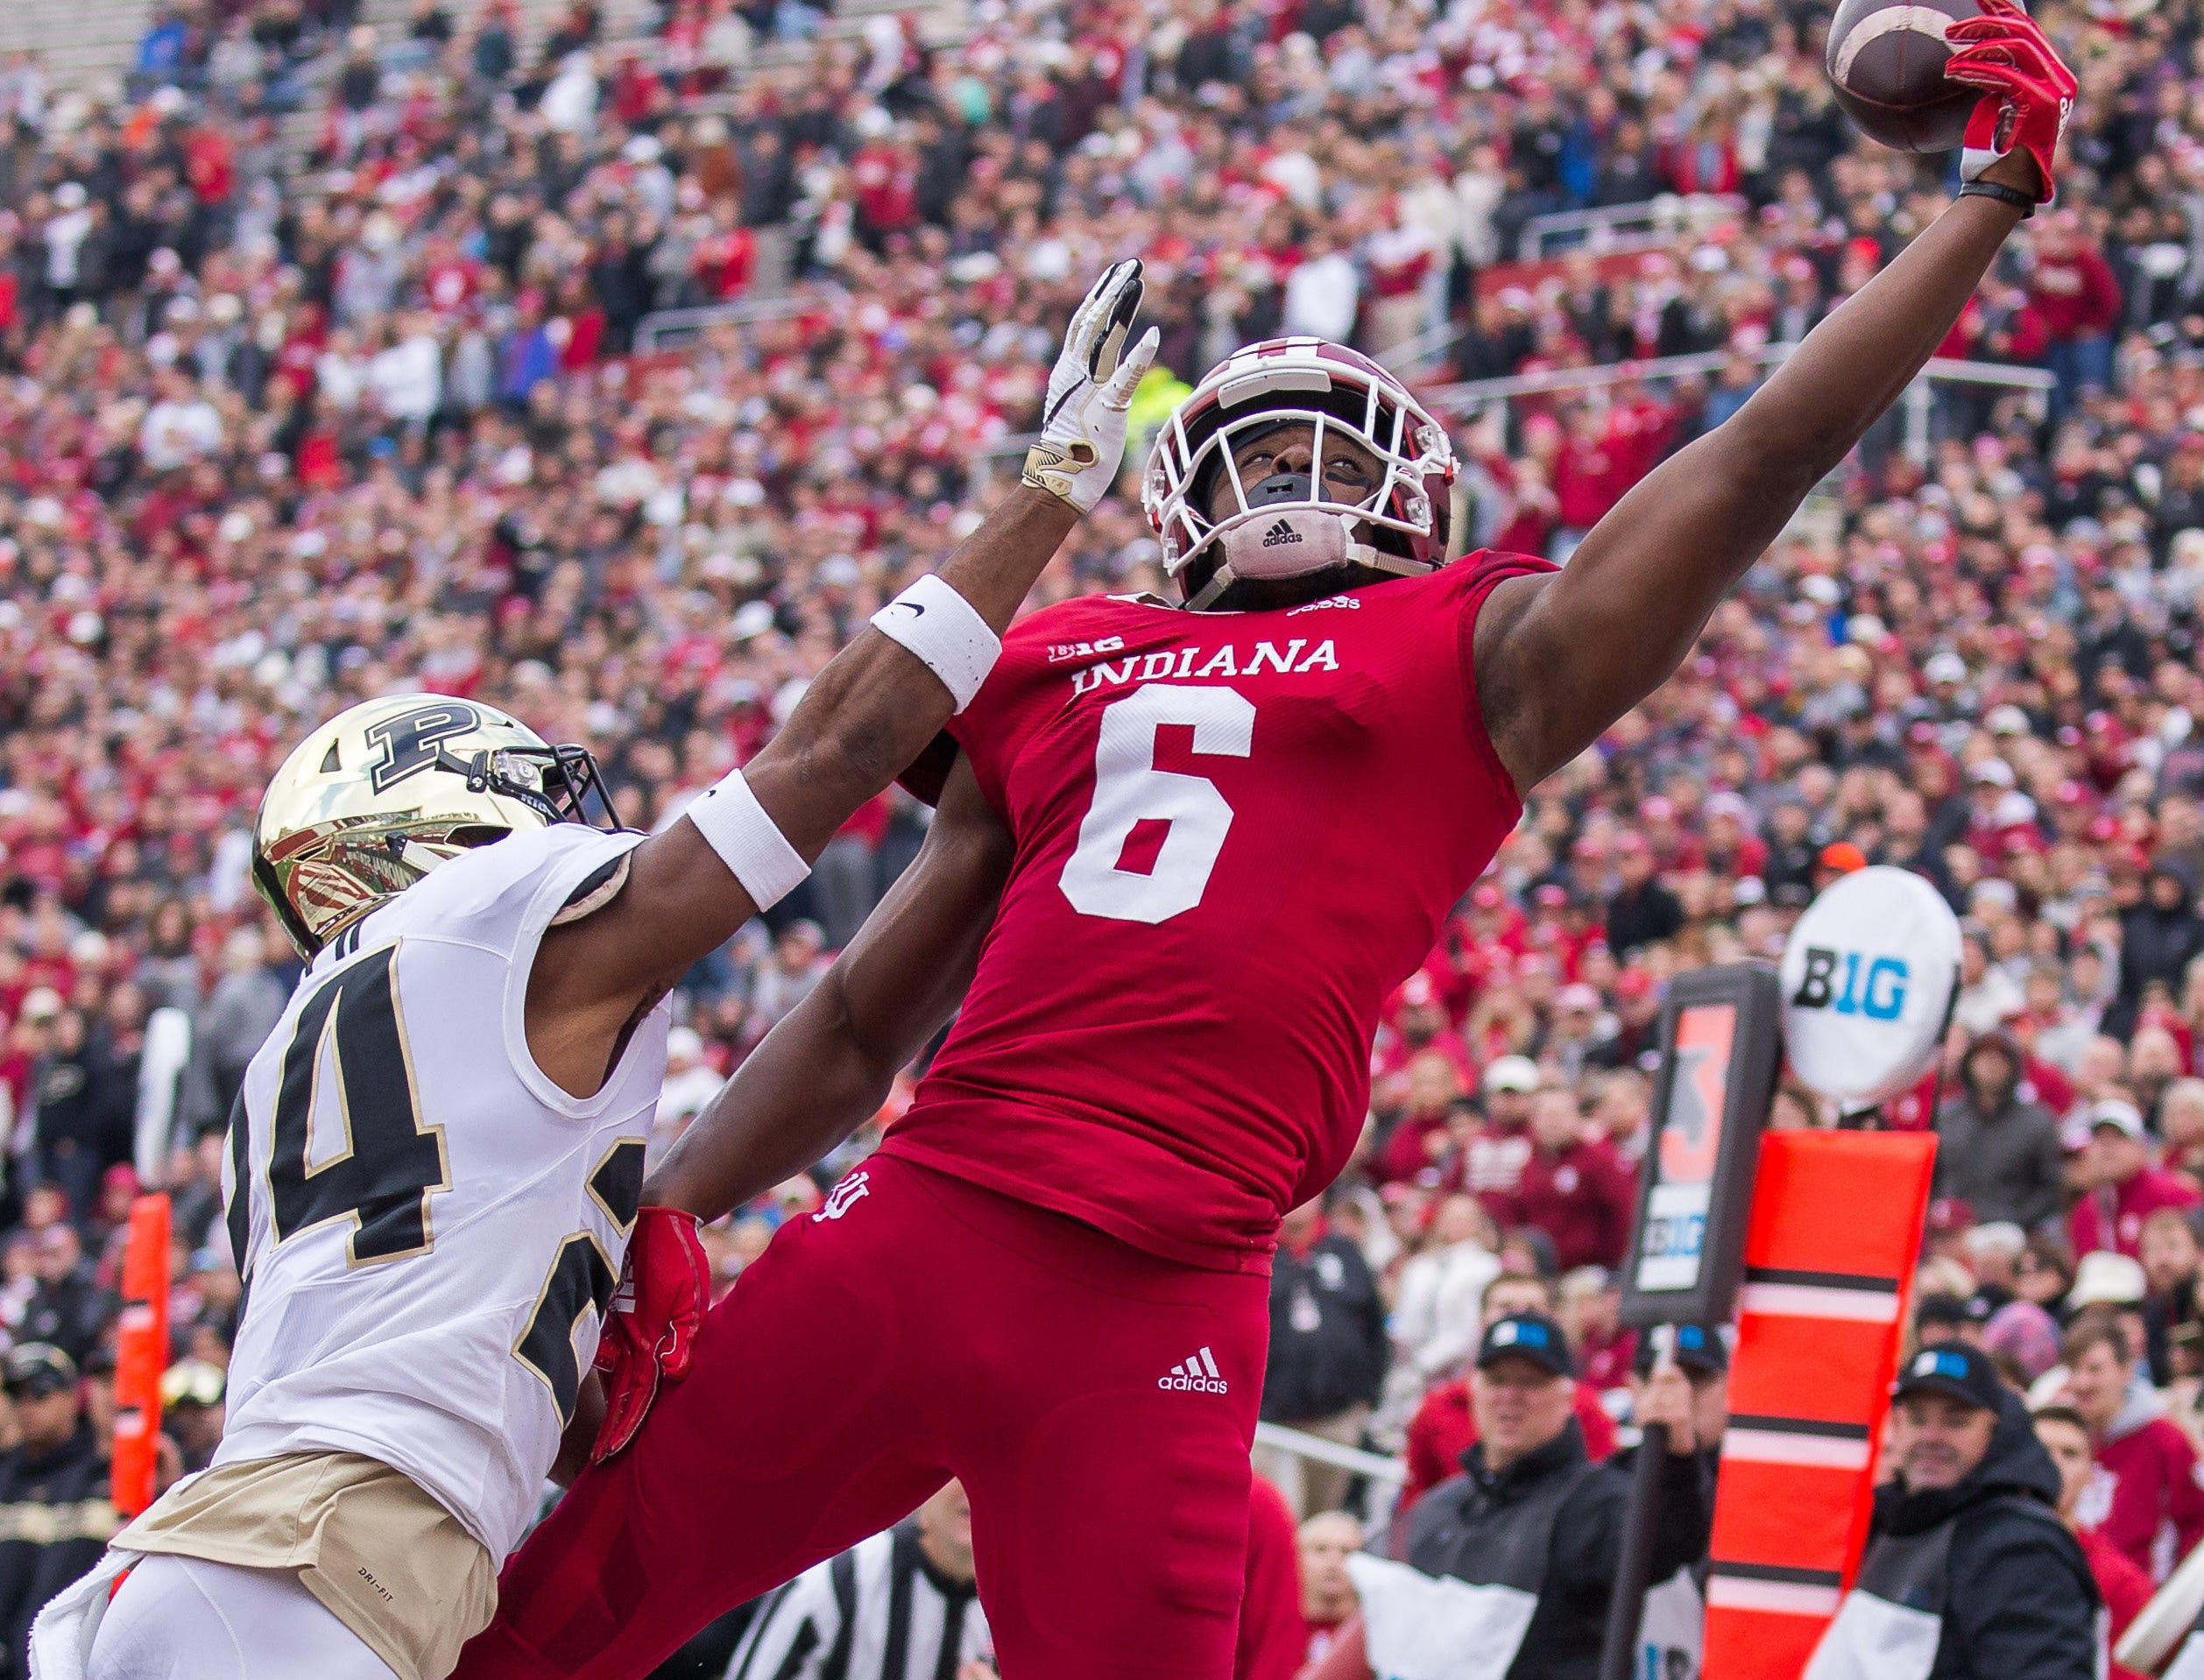 Nov 24, 2018; Bloomington, IN, USA; Indiana Hoosiers wide receiver Donavan Hale (6) attempts to catch a pass against Purdue Boilermakers cornerback Tim Cason (24) in the second quarter at Memorial Stadium. Mandatory Credit: Trevor Ruszkowski-USA TODAY Sports